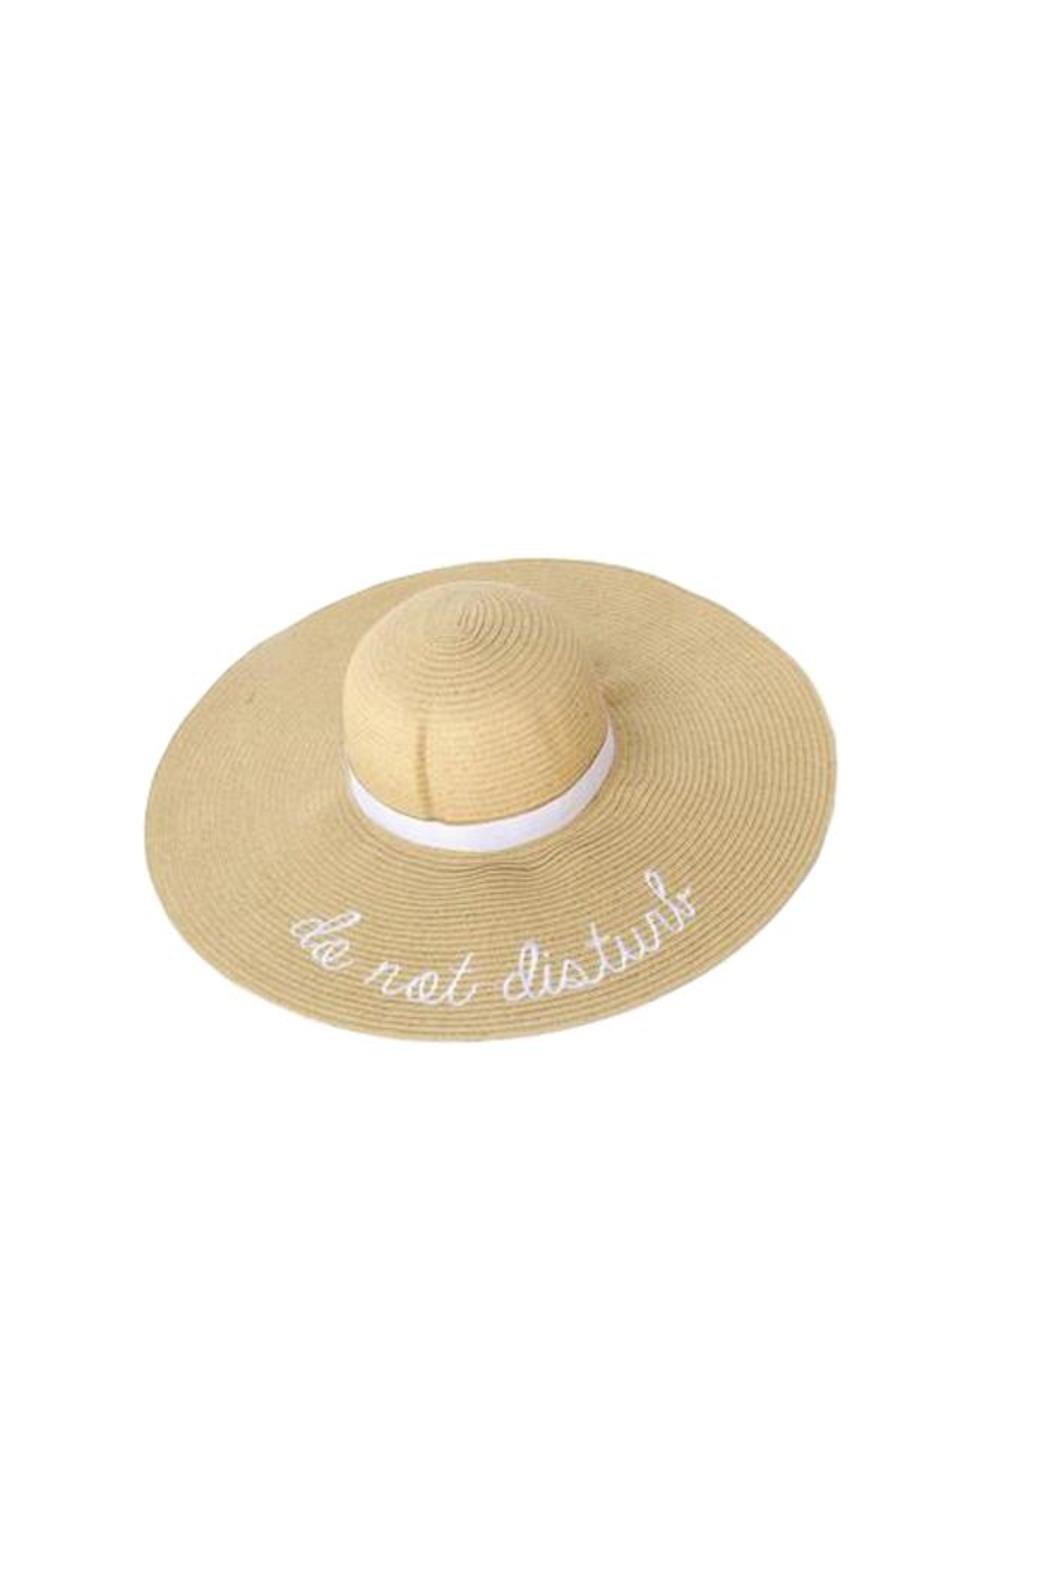 Two's Company Do Not Disturb Sun Hat - Front Cropped Image